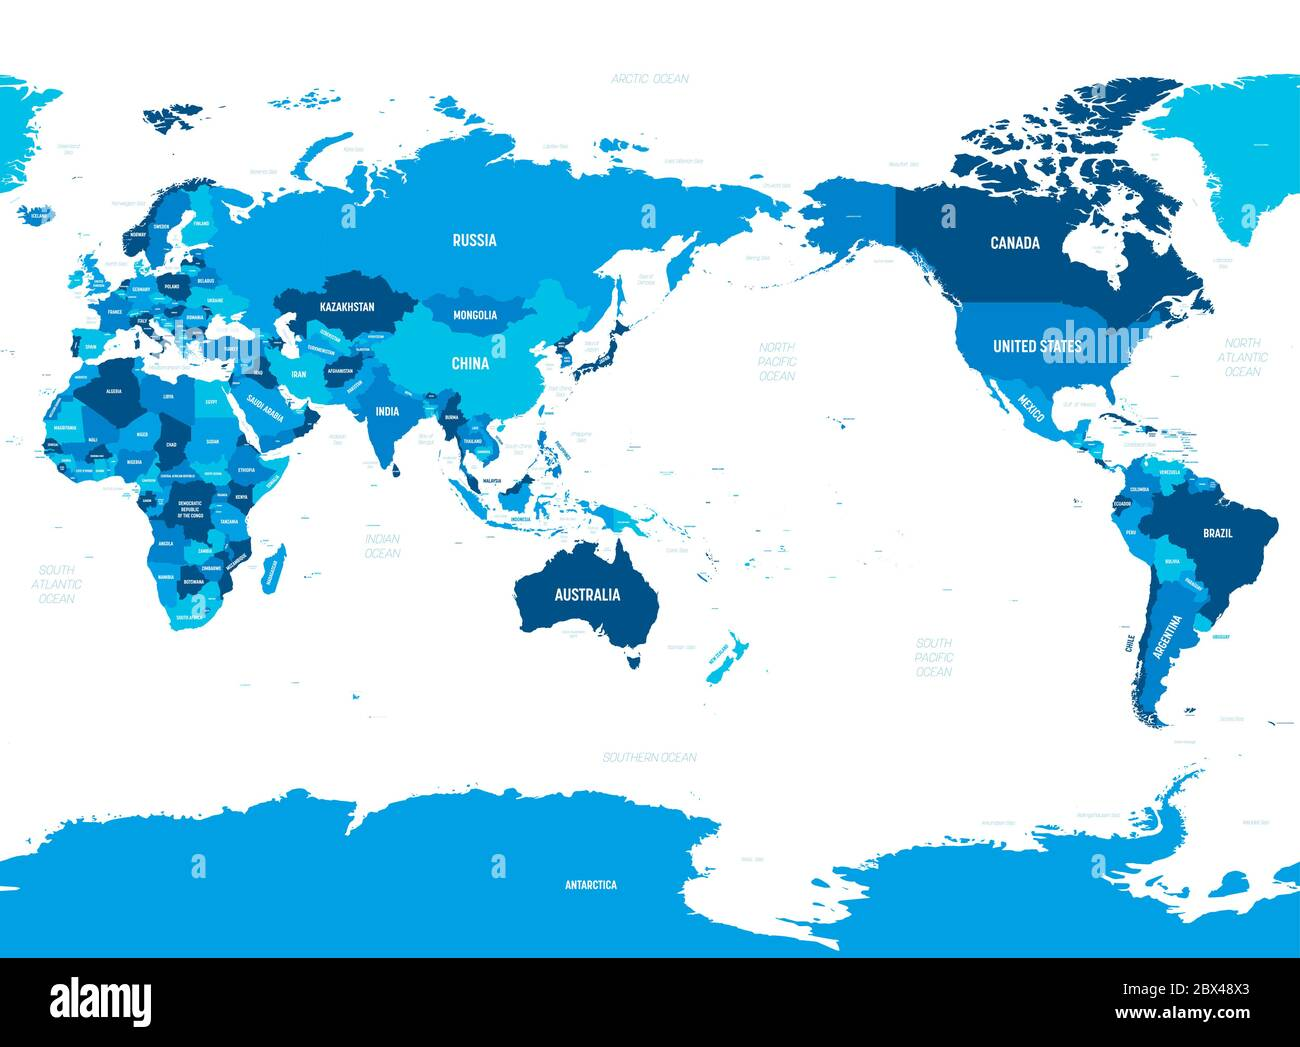 Picture of: World Map Asia Australia And Pacific Ocean Centered Green Hue Colored On Dark Background High Detailed Political Map Of World With Country Capital Ocean And Sea Names Labeling Stock Vector Image